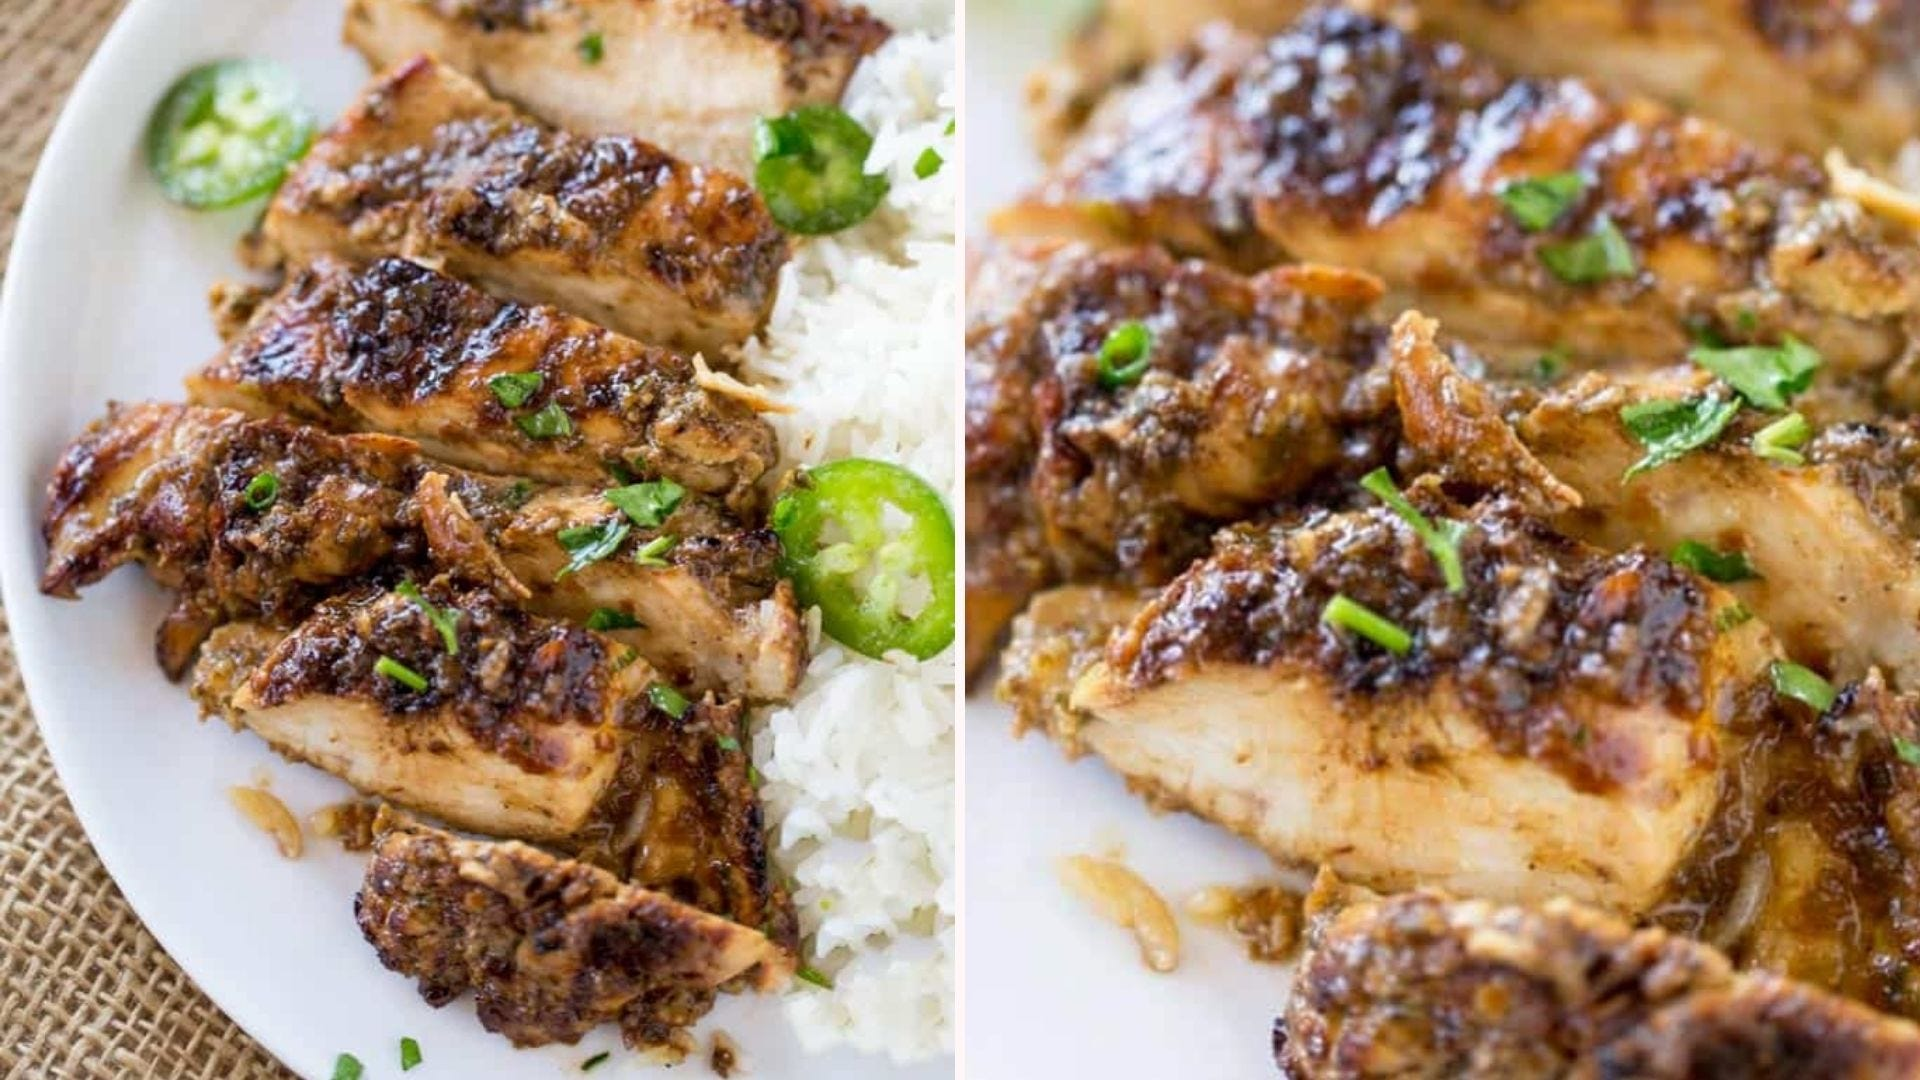 Two images of grilled jerk chicken, topped with parsley, and sliced jalapeno.